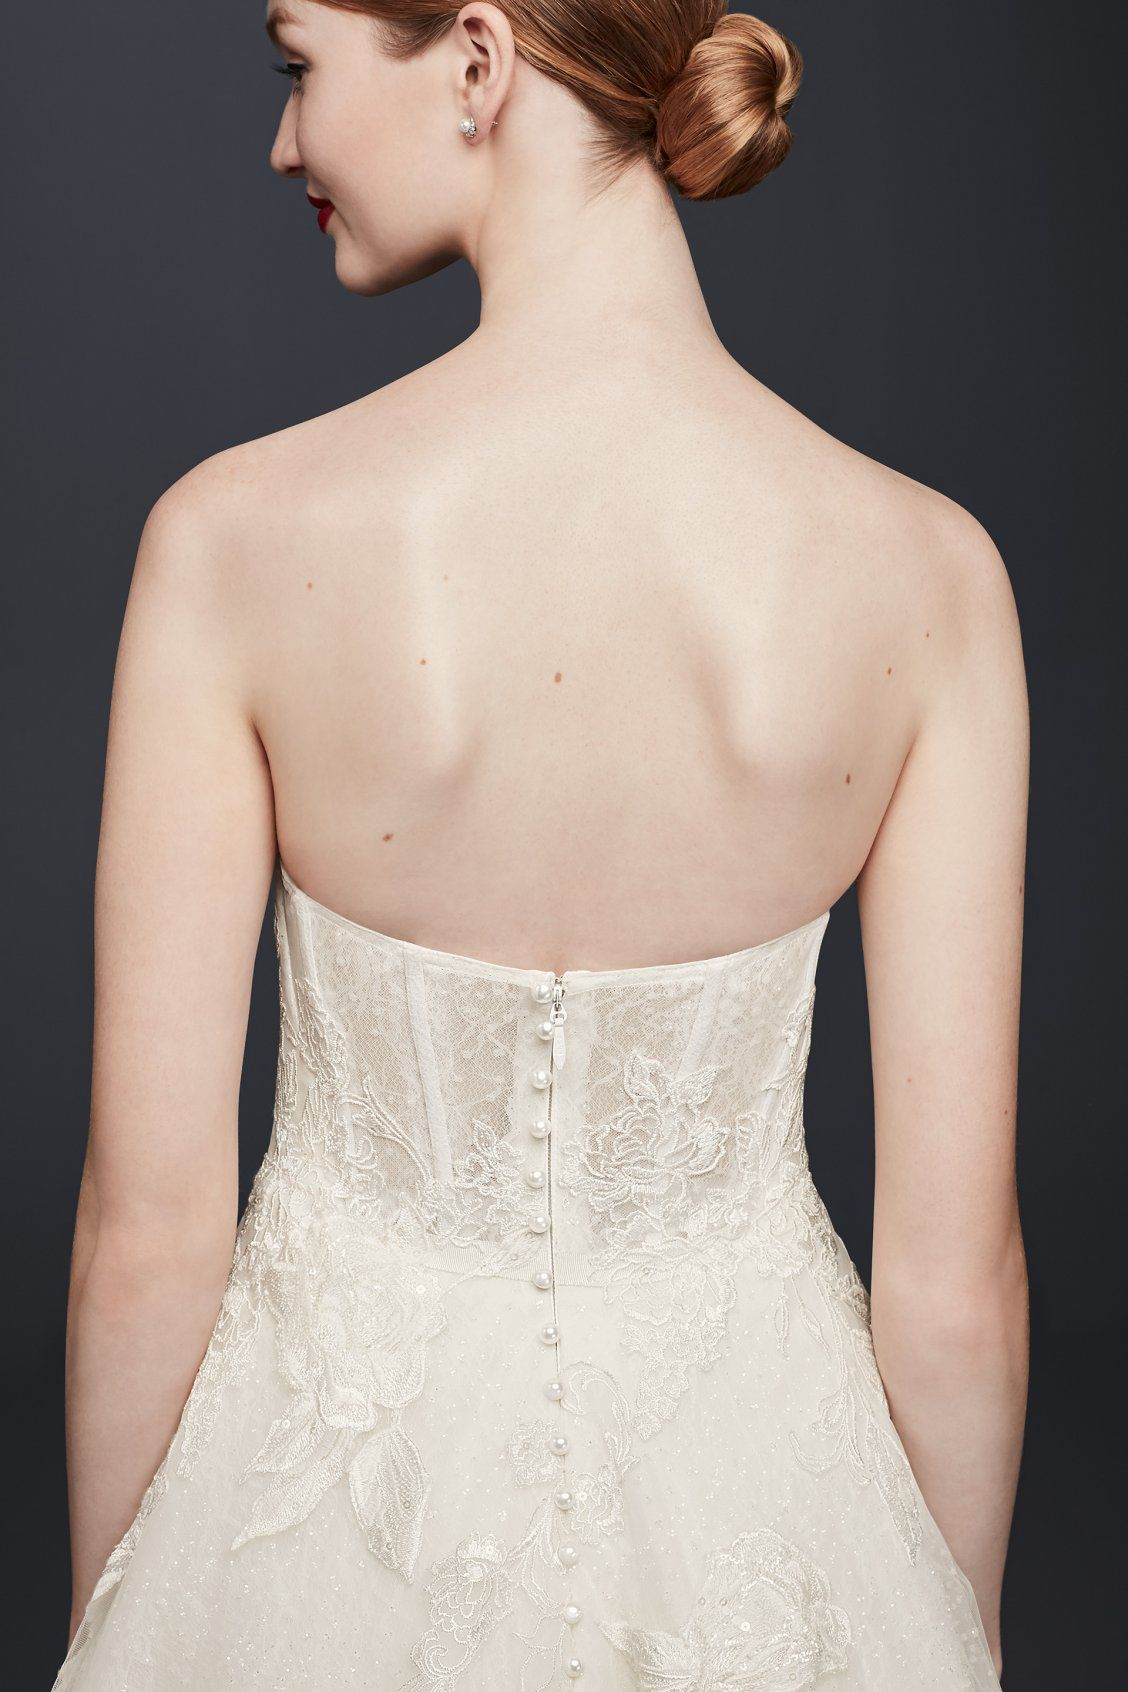 We love the special added detail of the pearl buttons on this sheer